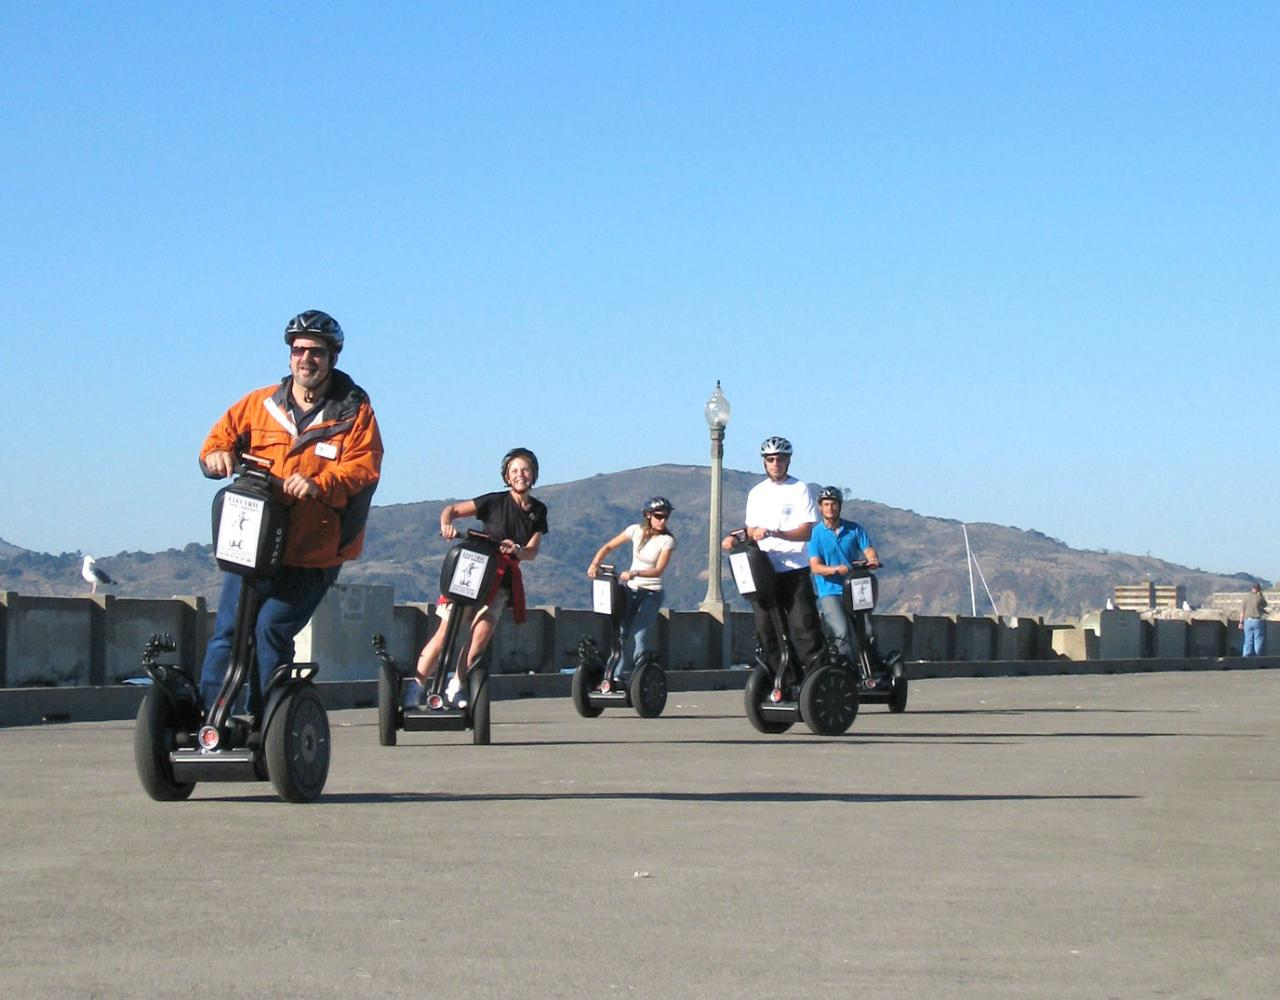 Early Bird Segway Tour Deal - Save on Wharf, Waterfront & North Beach Segway Tour 10:30am